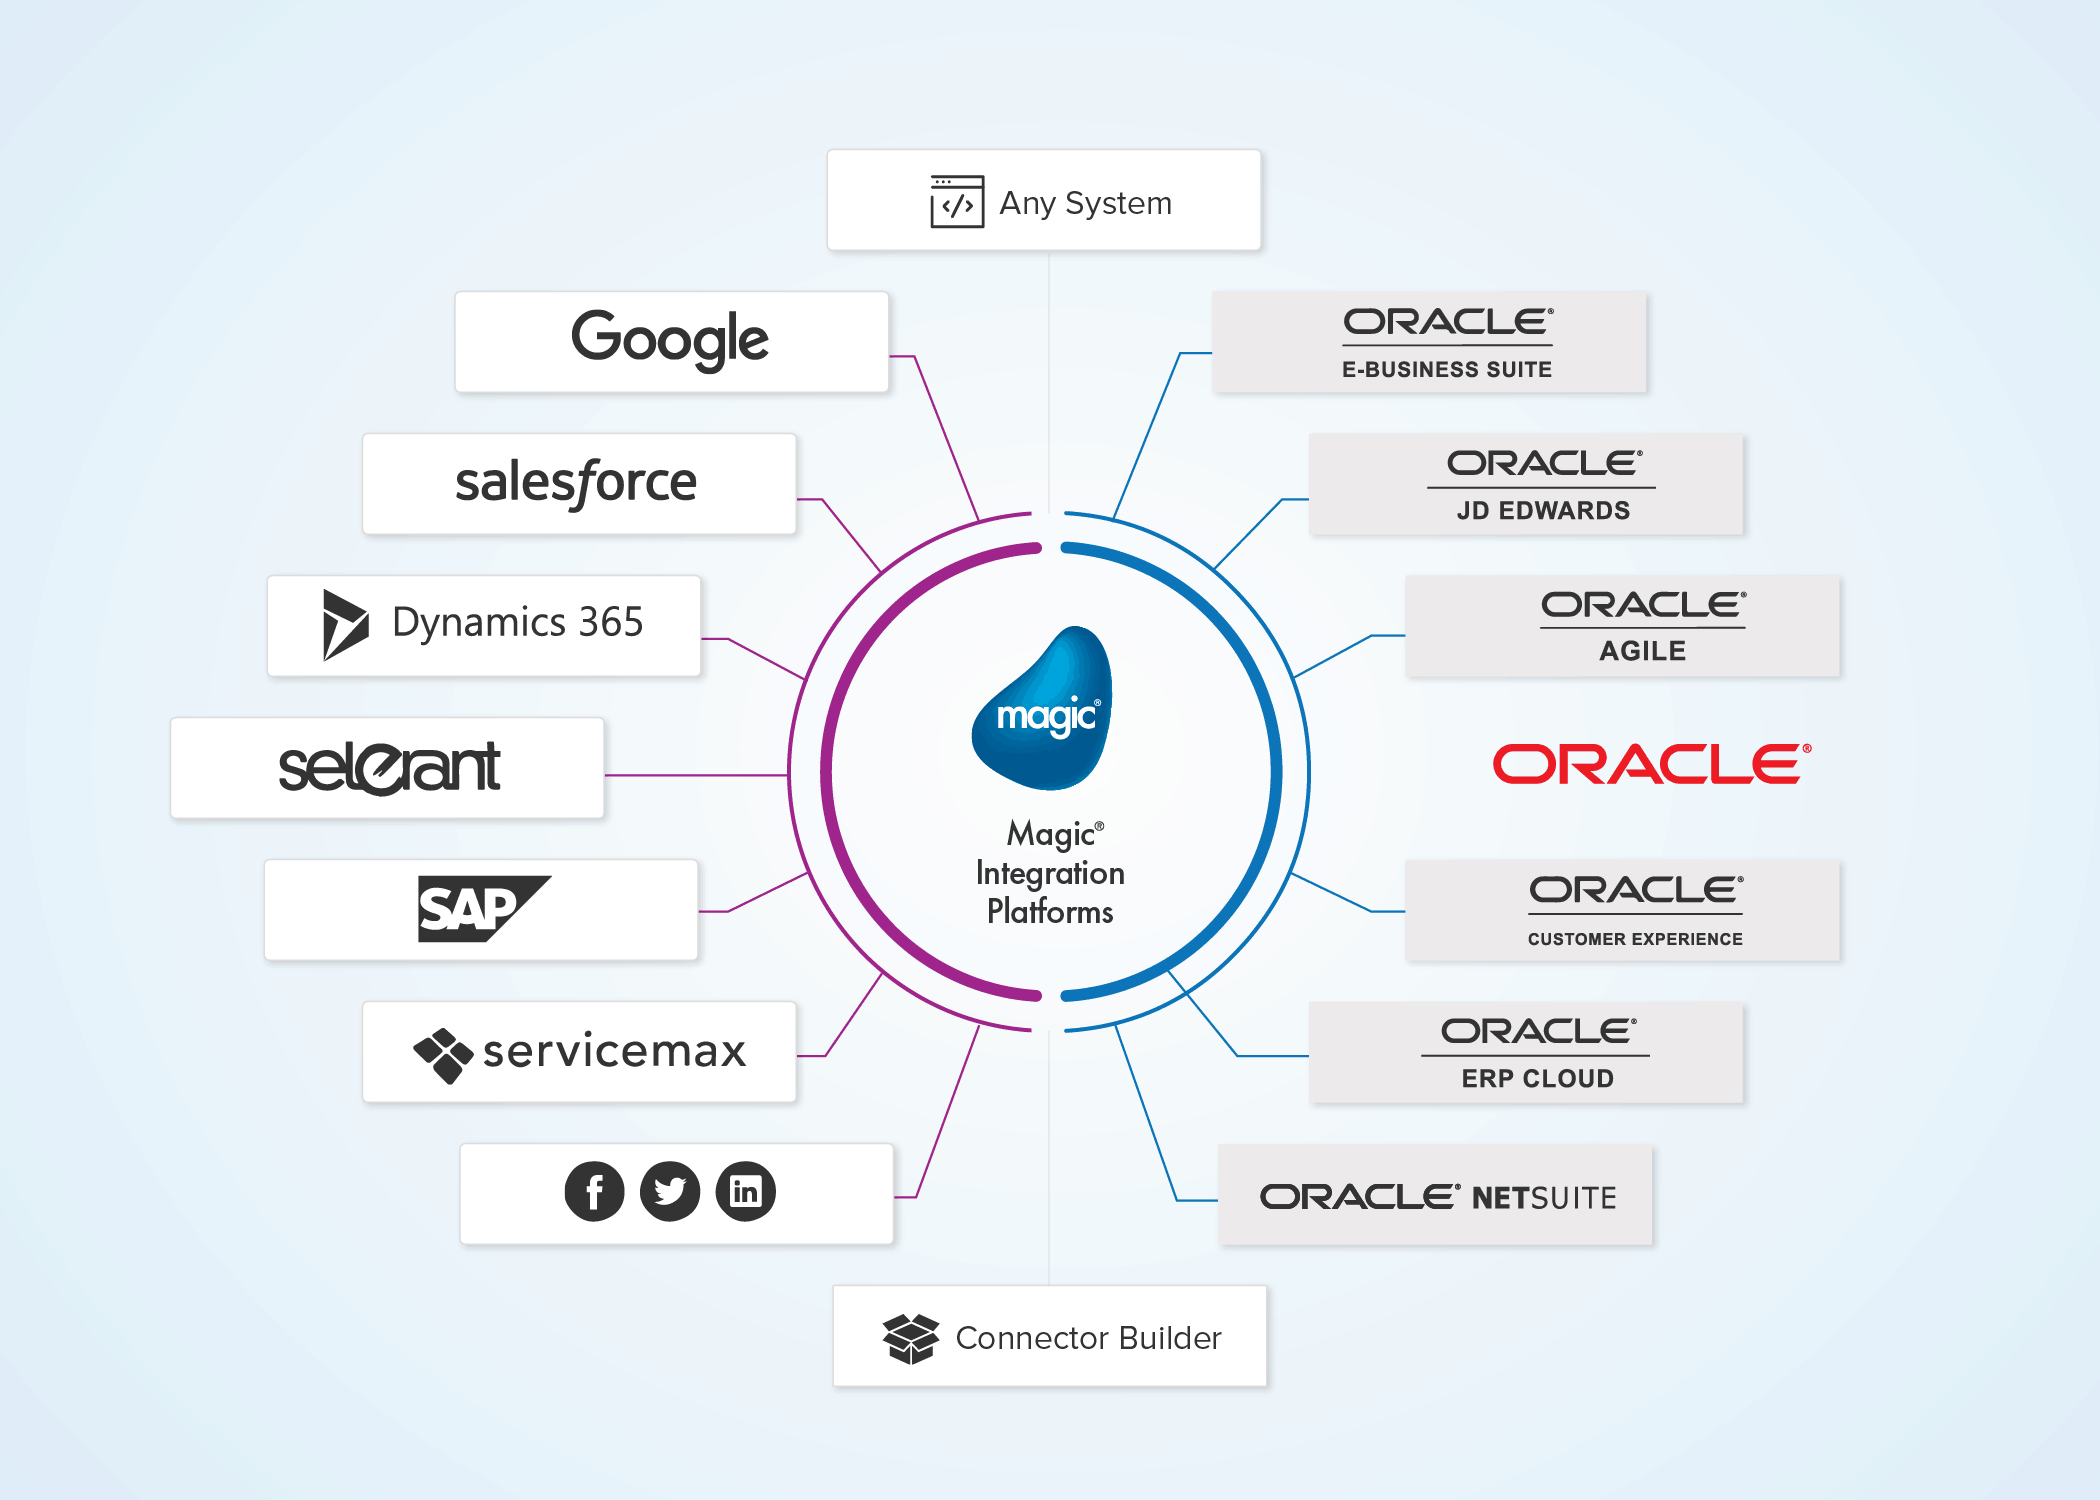 Oracle systems integration diagram architecture